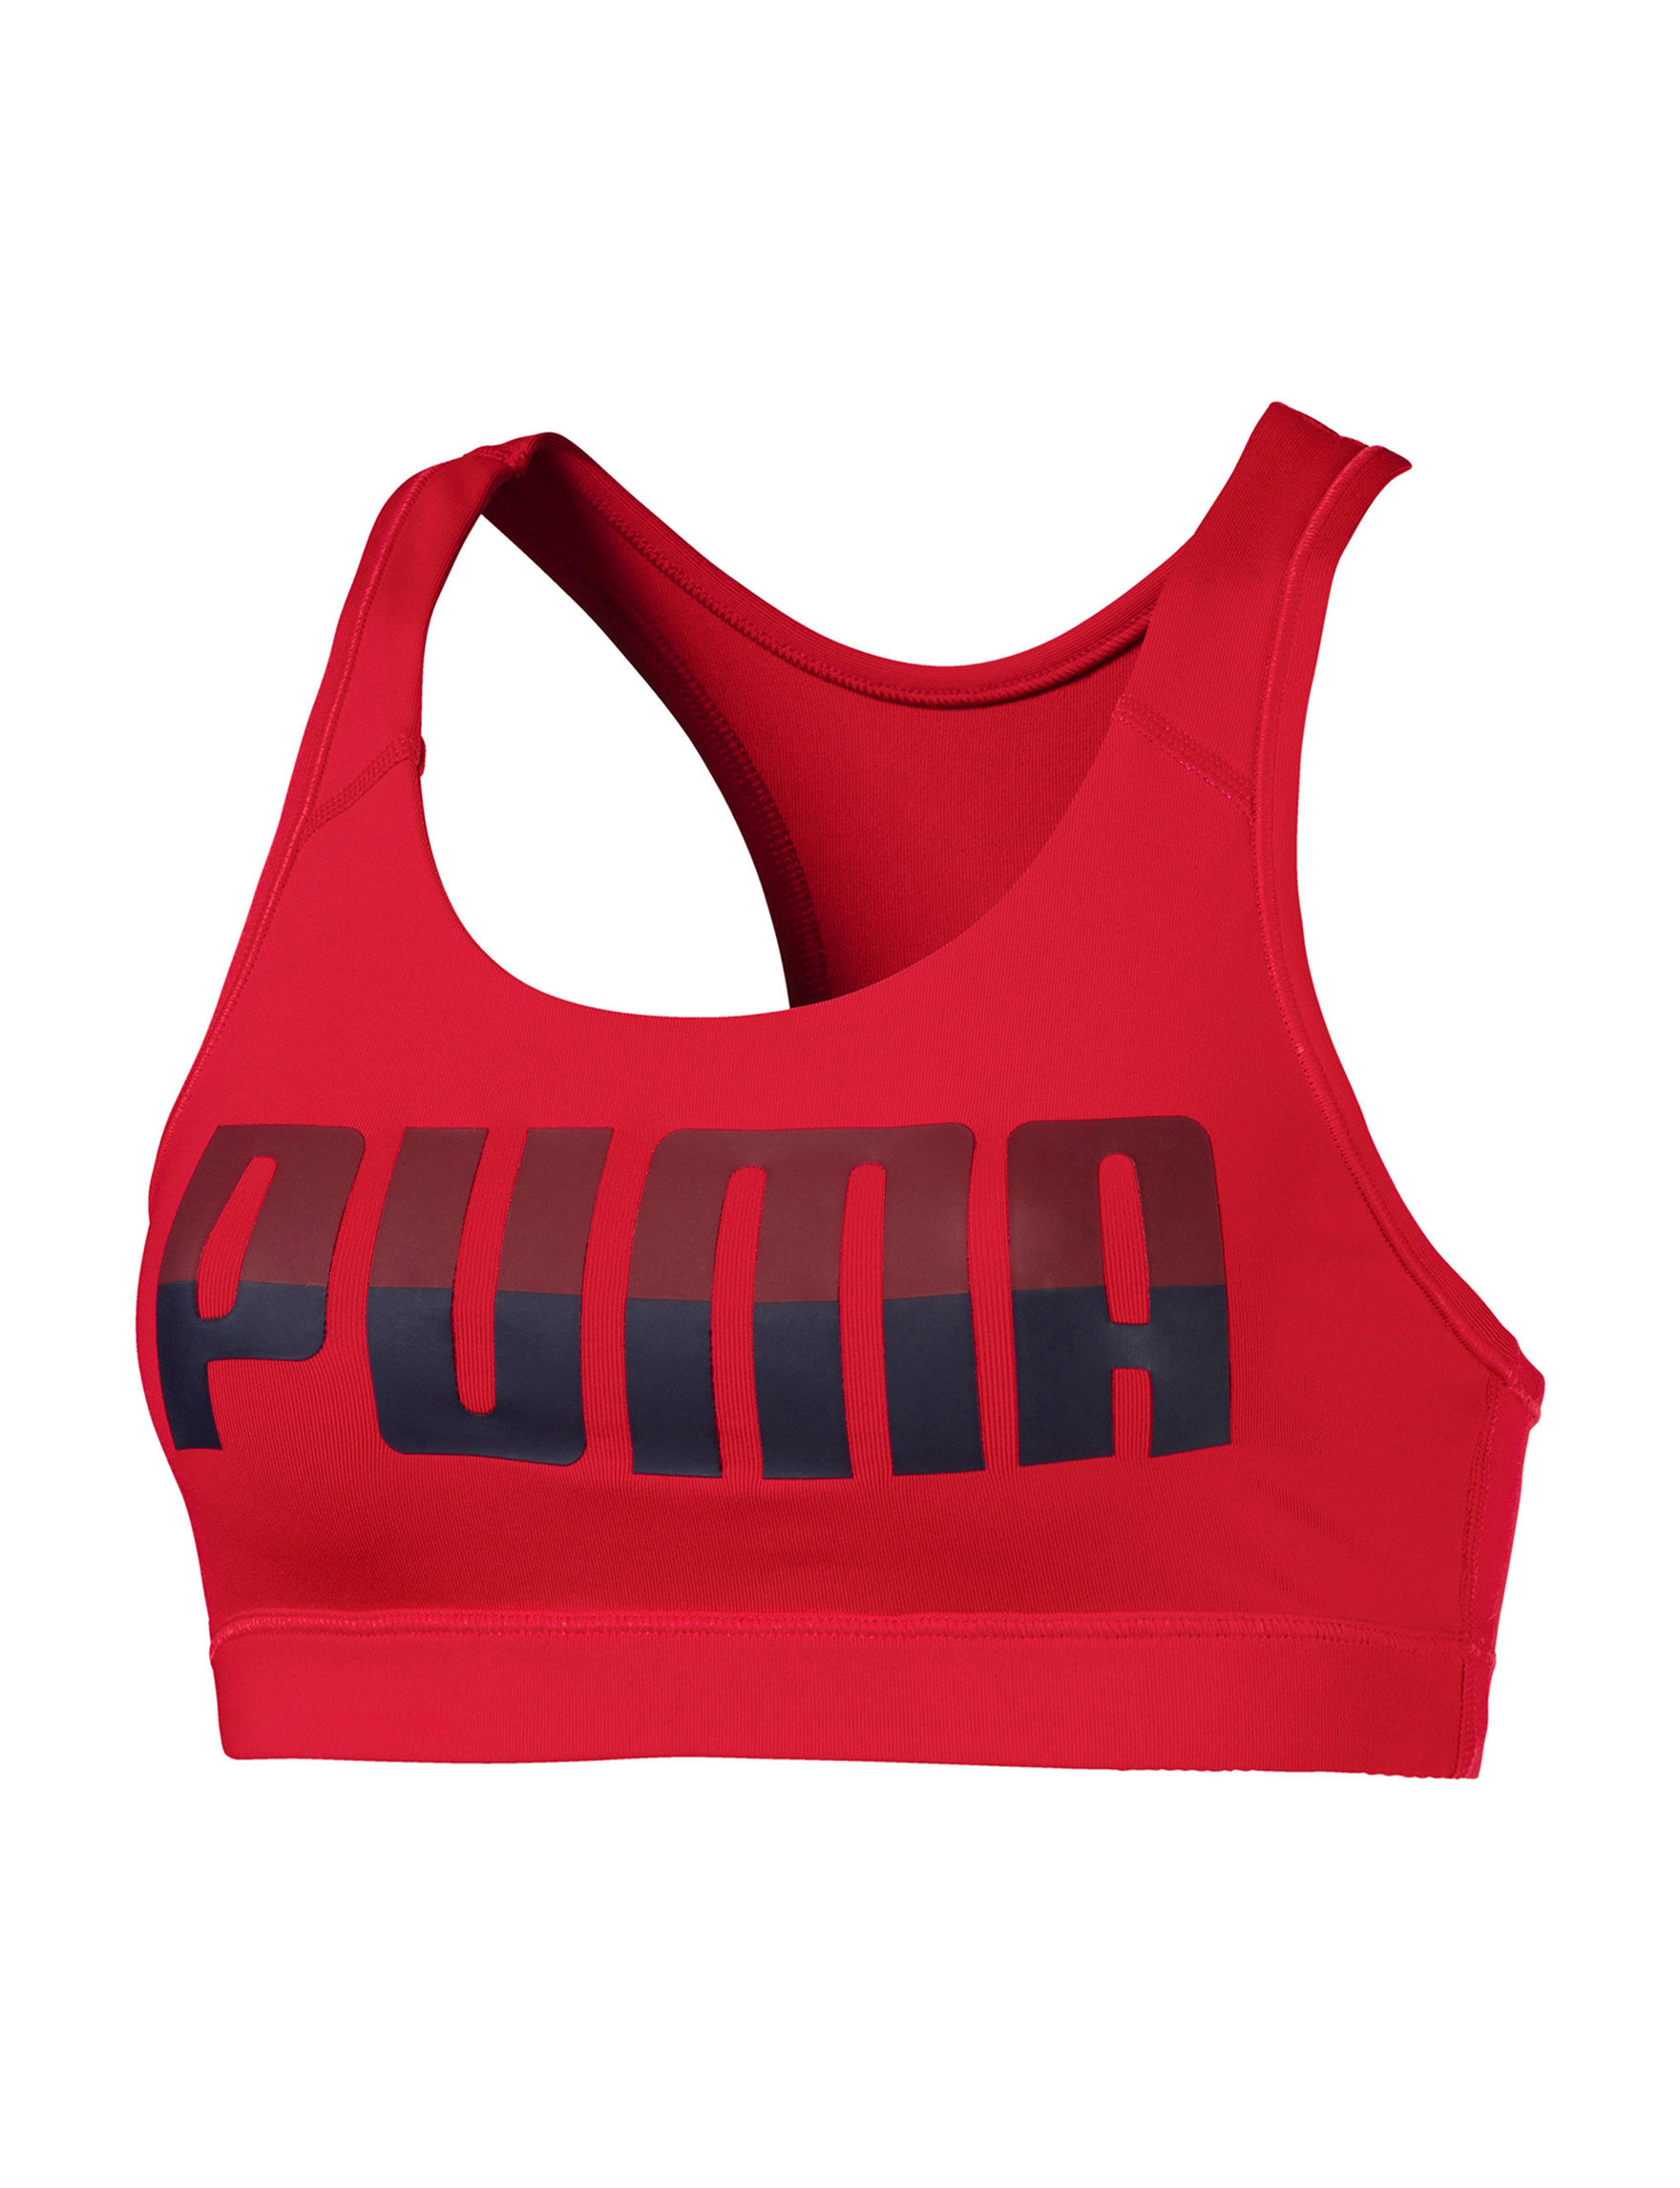 Puma Red Bras Racerback Sports Bra